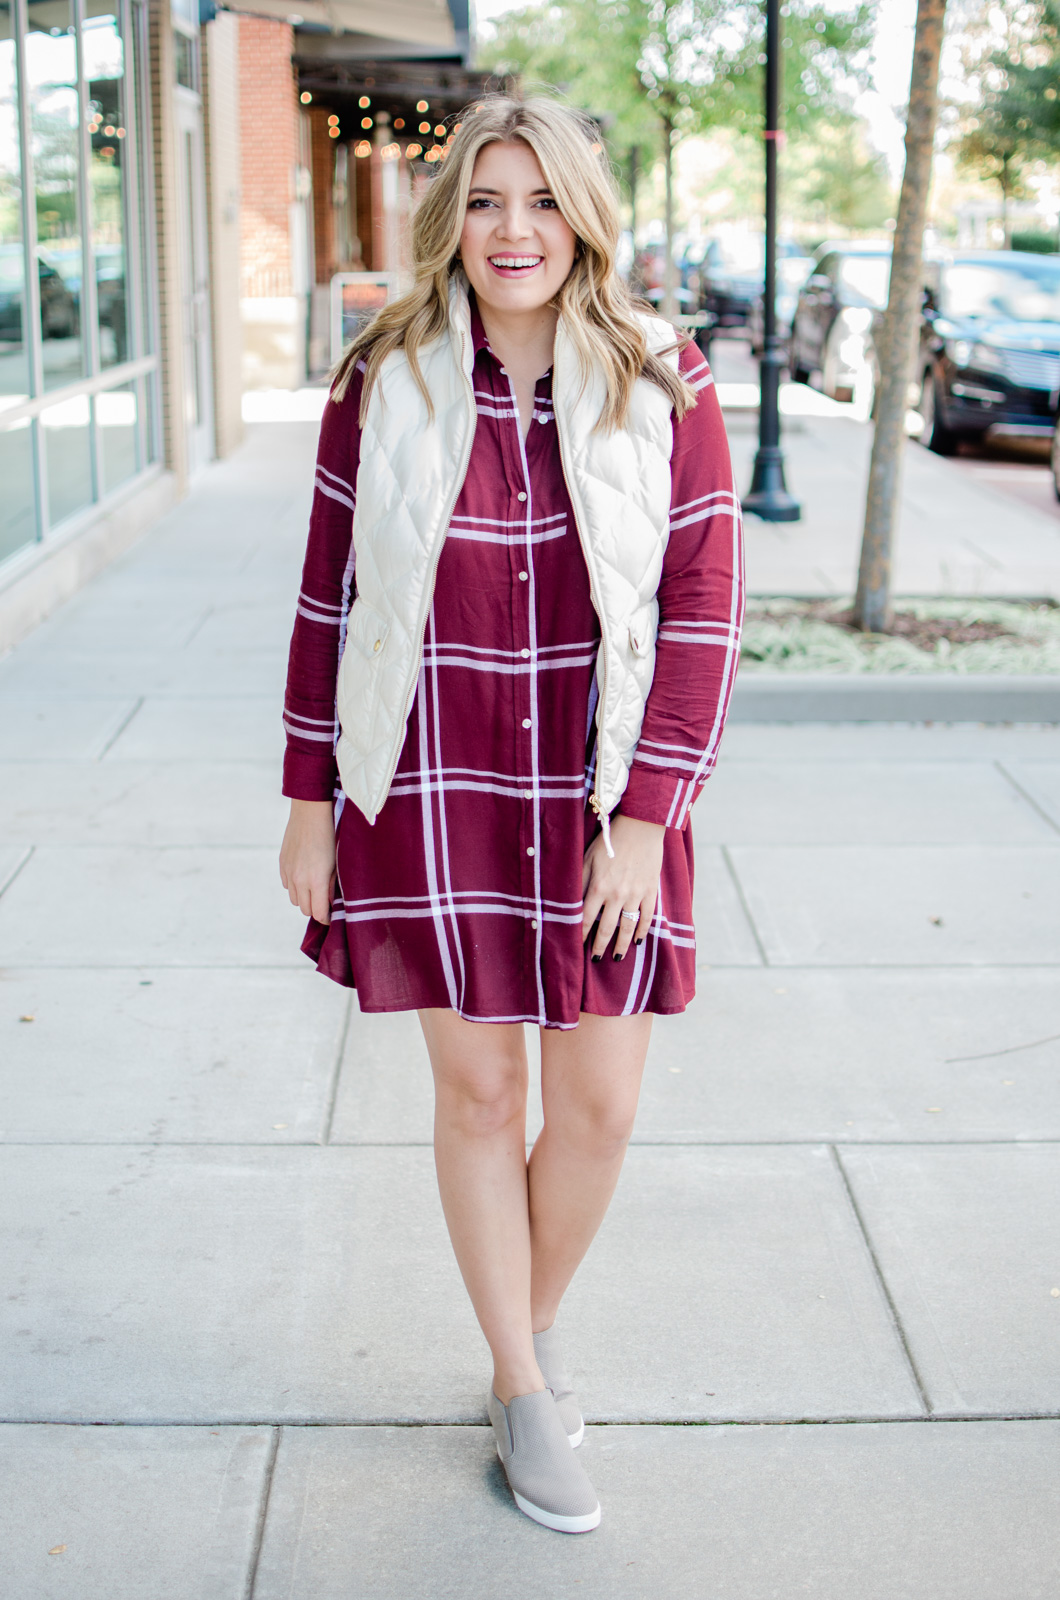 five plaid dress outfits for fall and winter - head to the post to see the additional 4 plaid dress outfit ideas! | bylaurenm.com